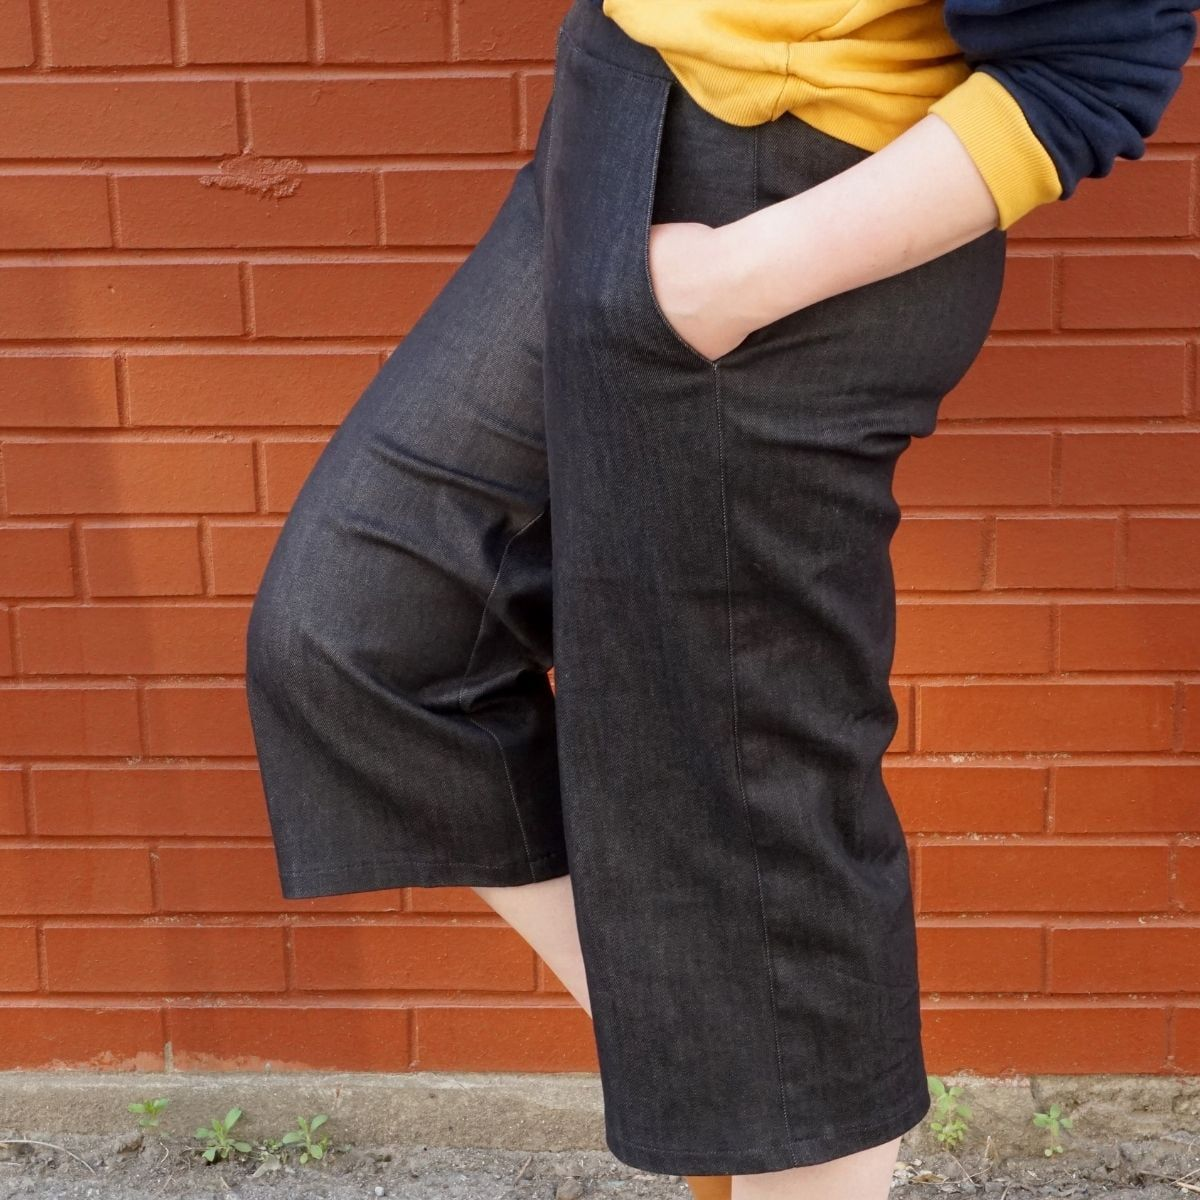 Meg's Pagosa Pants with set-in pockets